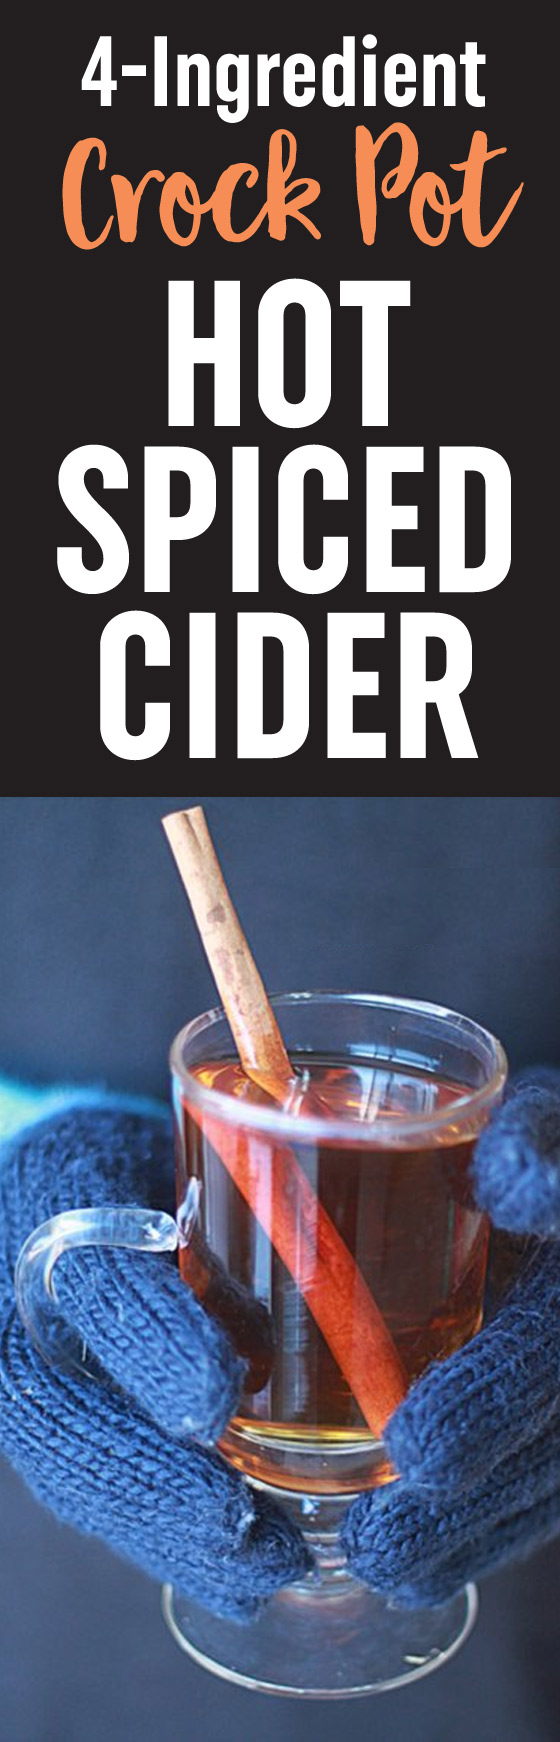 Slow Cooker Hot Spiced Apple Cider - With just four ingredients (okay, five if you decide to spike it with your favorite rum) this Crock Pot mulled cider recipe couldn't be any easier to make.